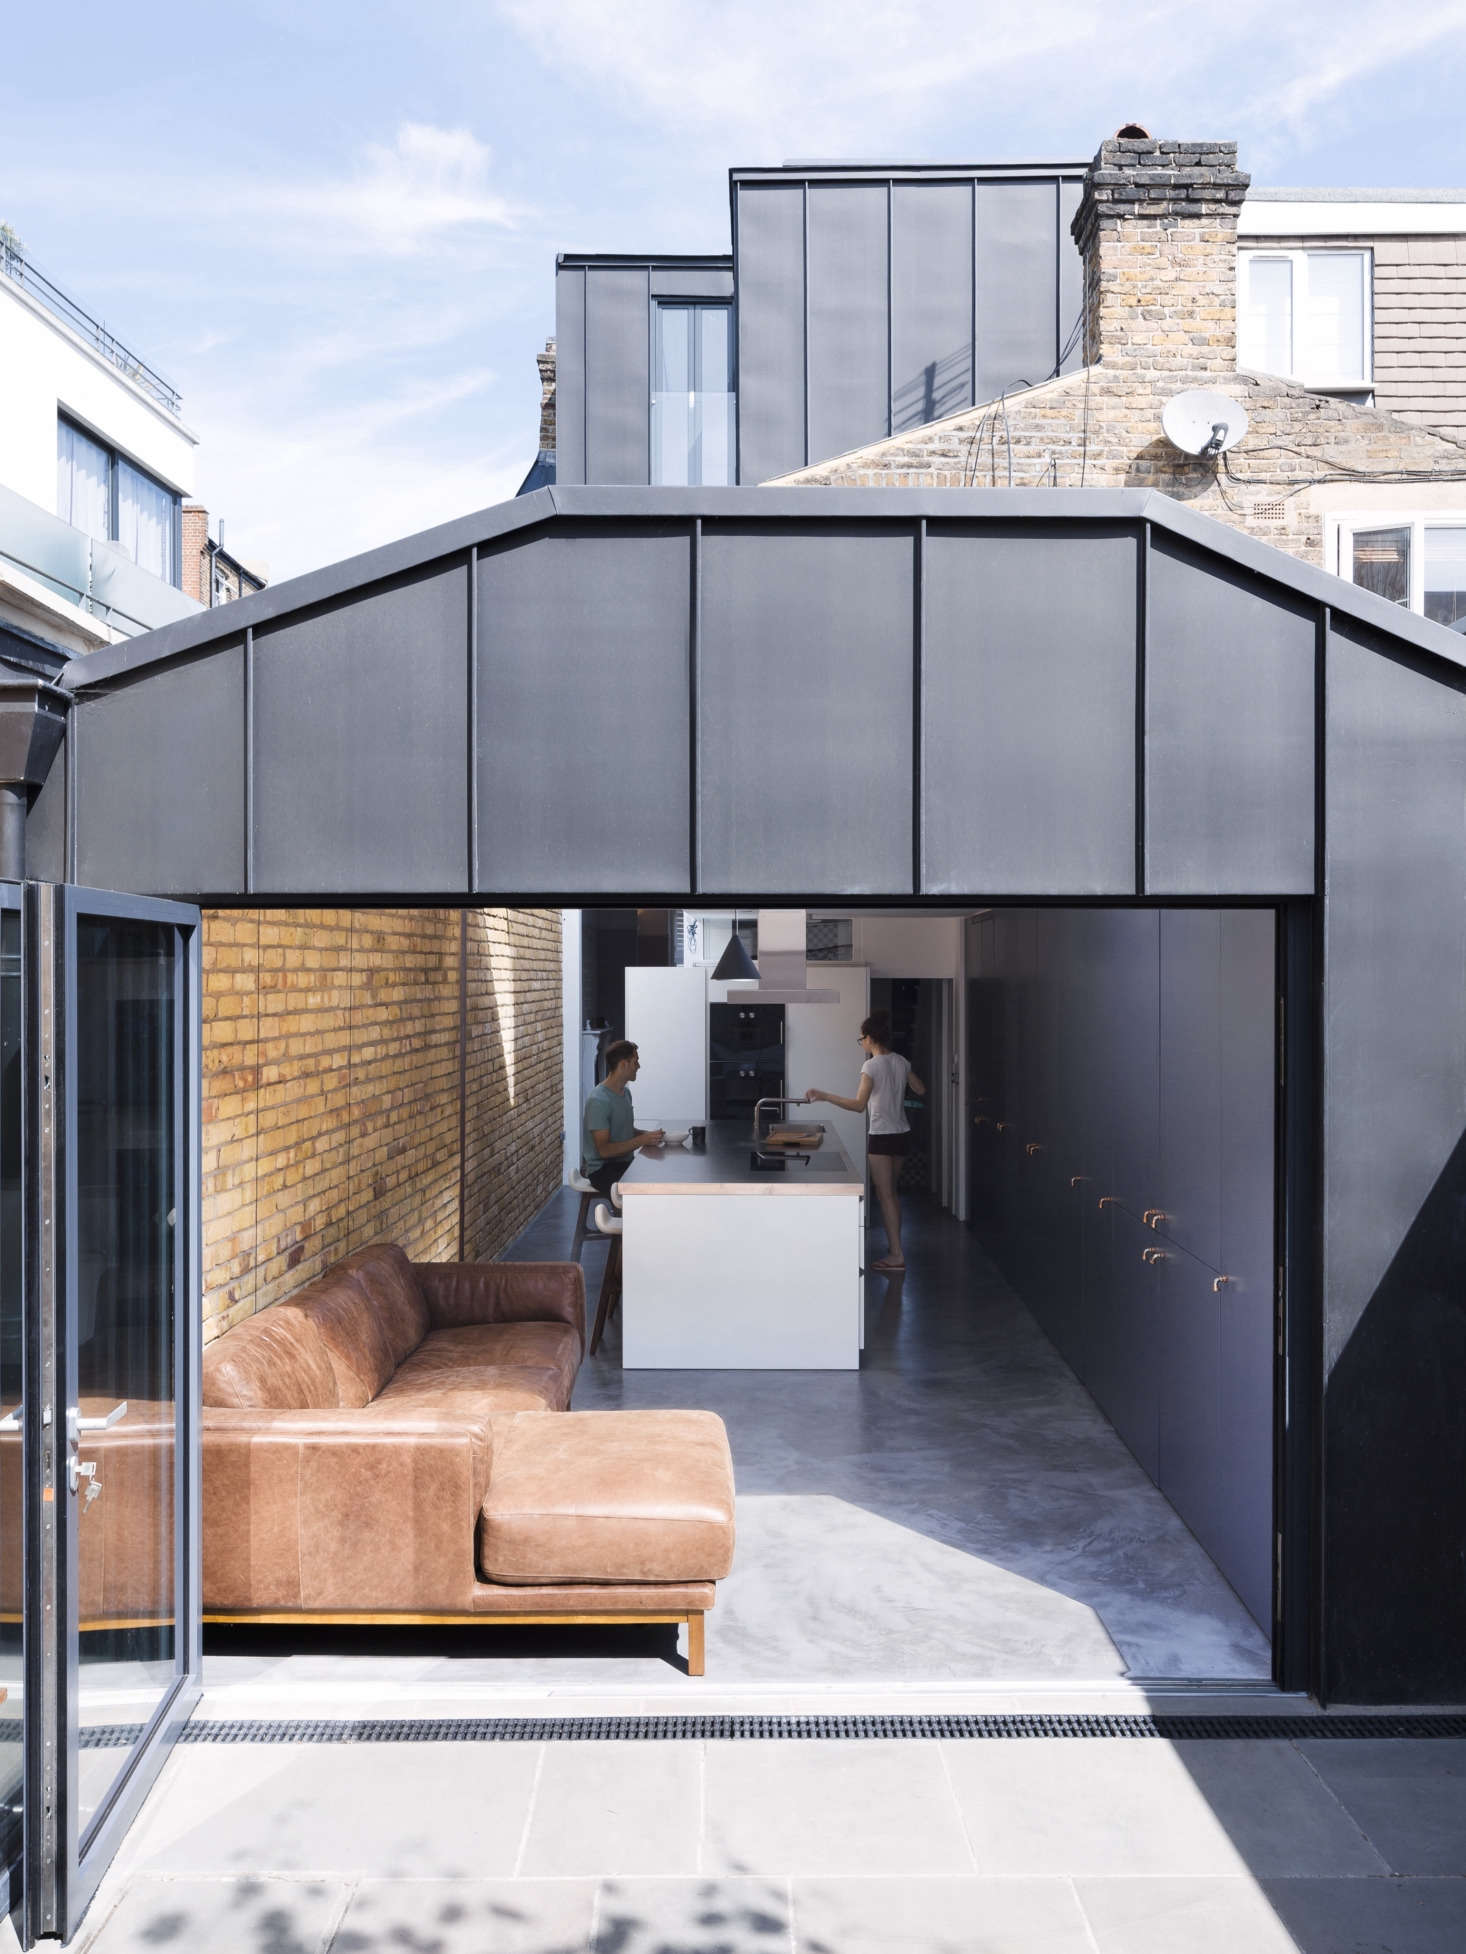 In the back of the house, in place of a small porch (scroll to the bottom for a Before shot), Astridge built a 350-square-foot kitchen/sitting area extension with an accordion steel-frame door that opens onto the terrace and garden.